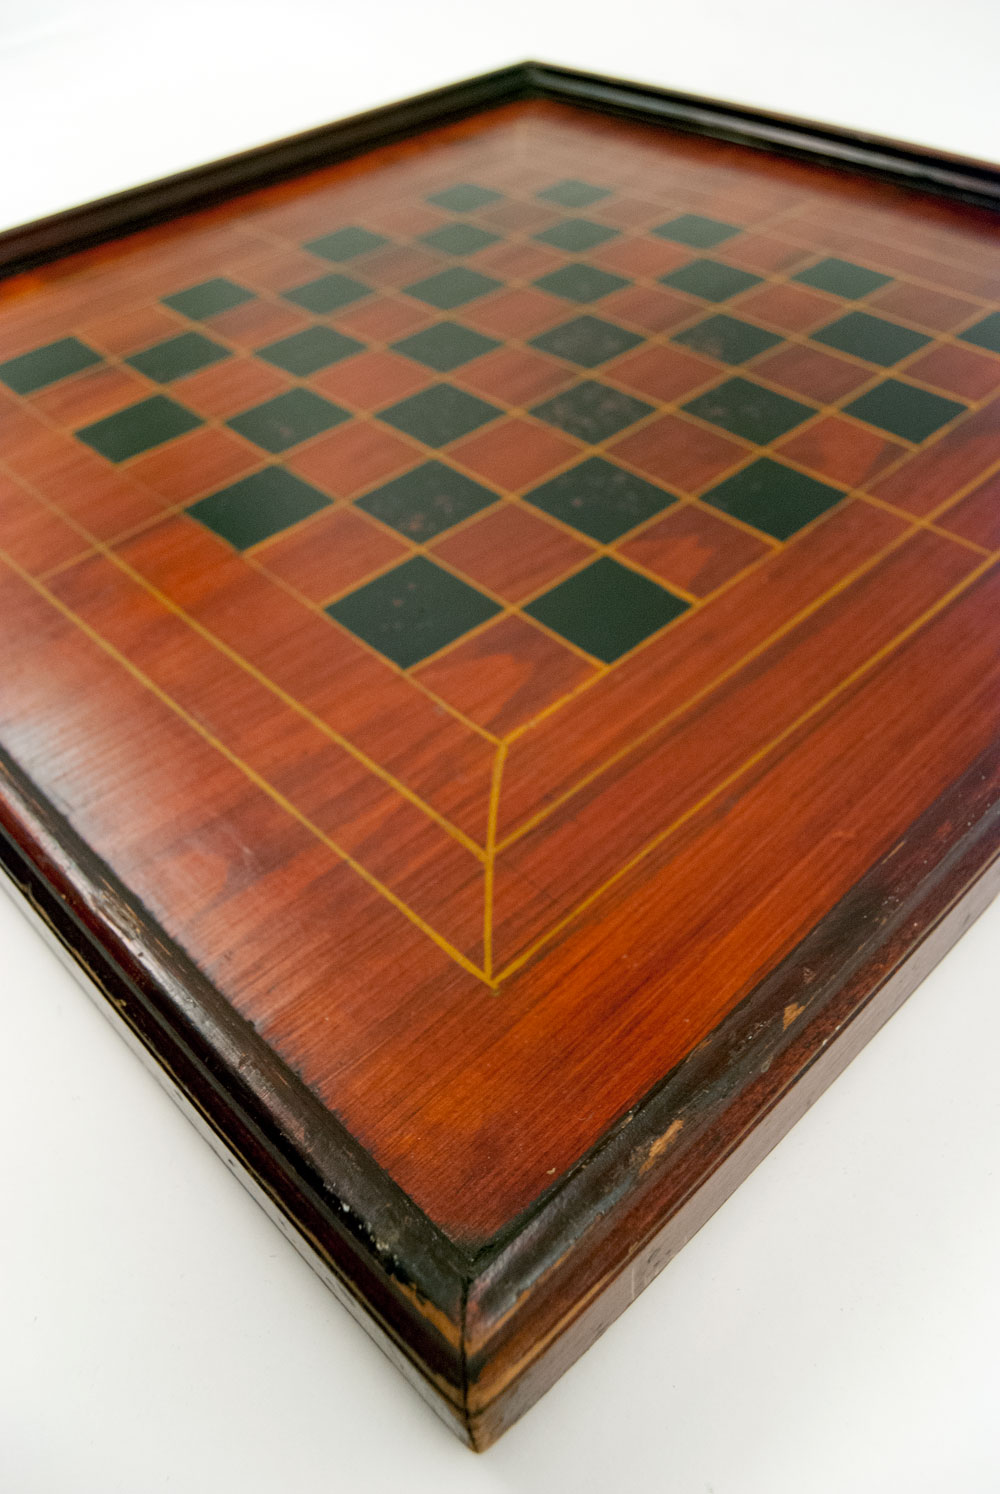 Co color painting games - 9 Color Double Sided Lancaster Co Pennsylvania Antique Gameboard